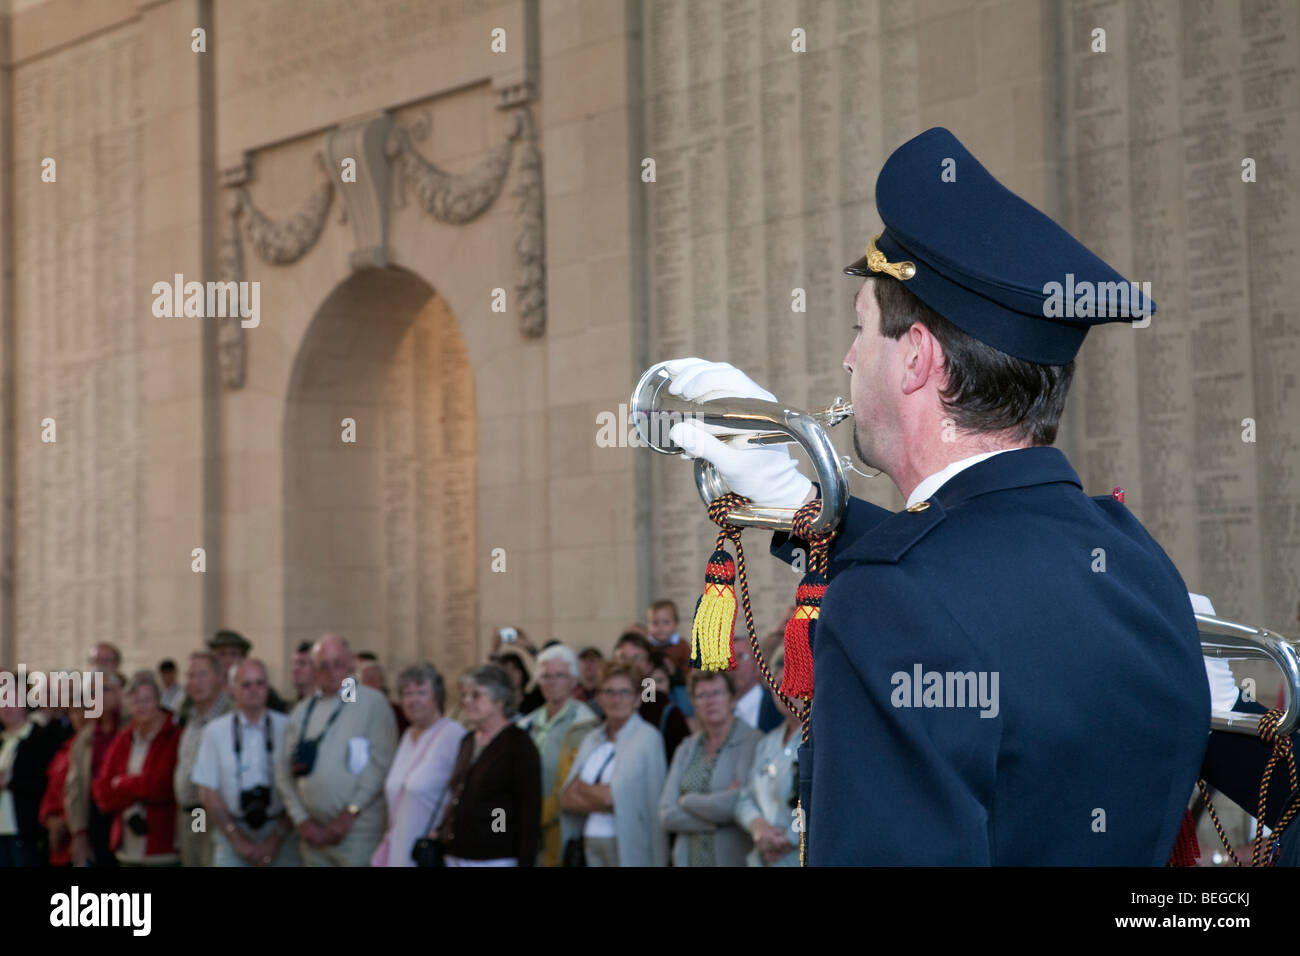 Bugler from the fire fighting corps playing the Last Post under the Menin Memorial Gate. - Stock Image